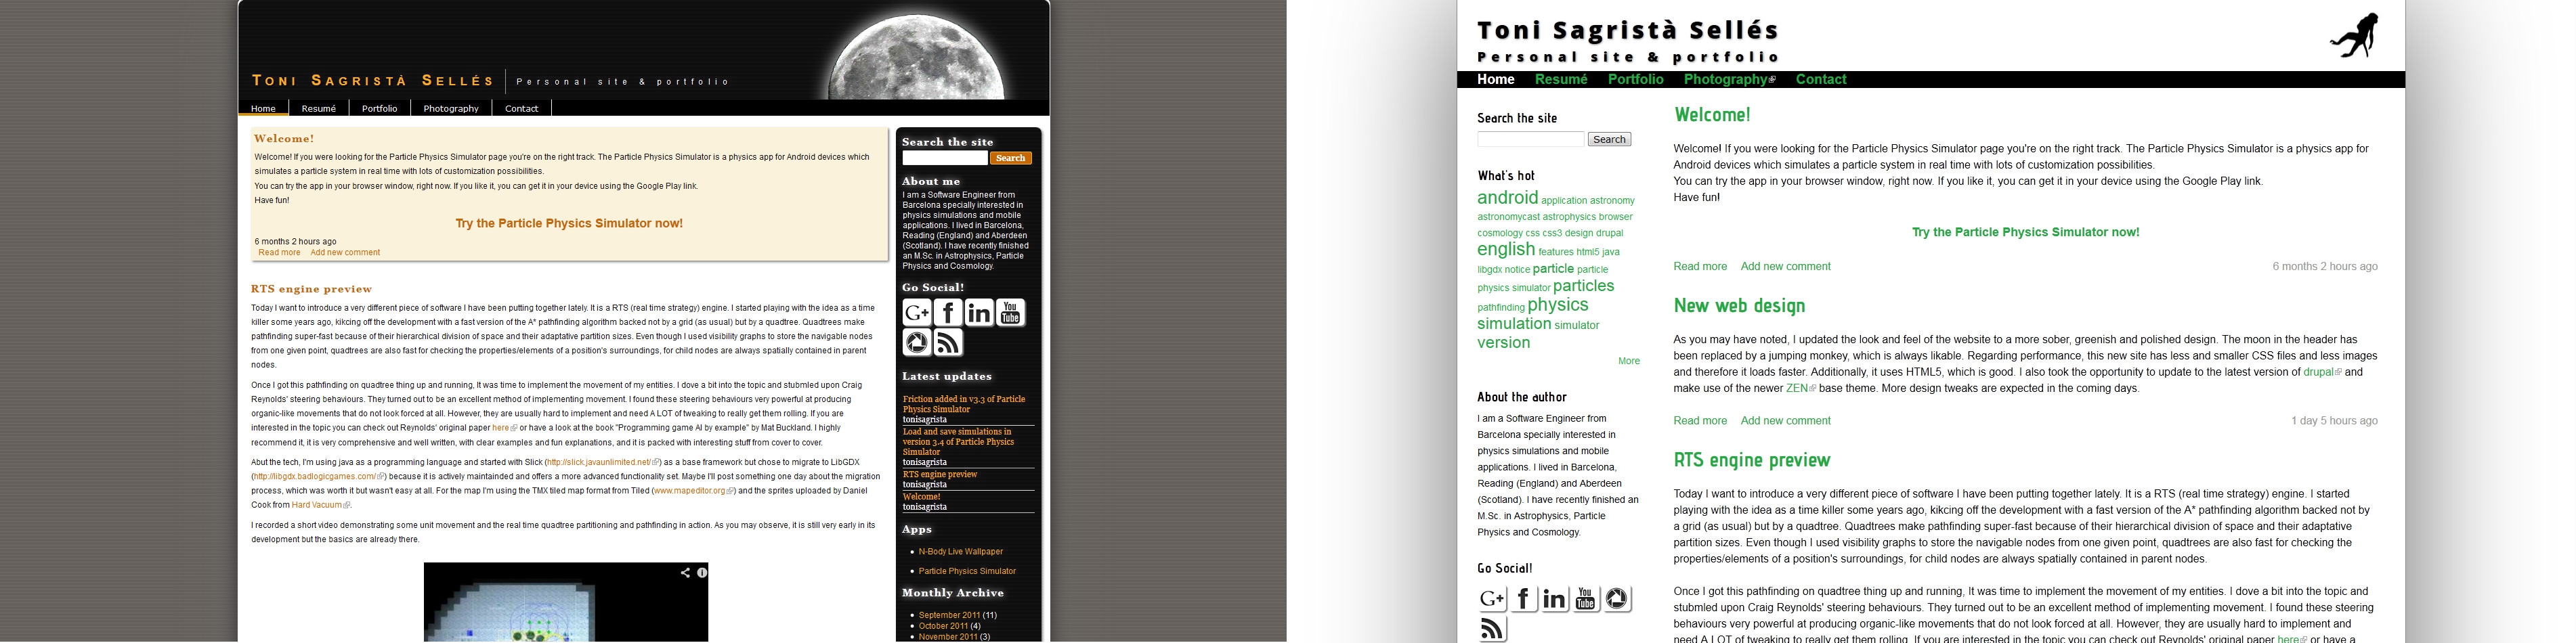 Old and new web designs